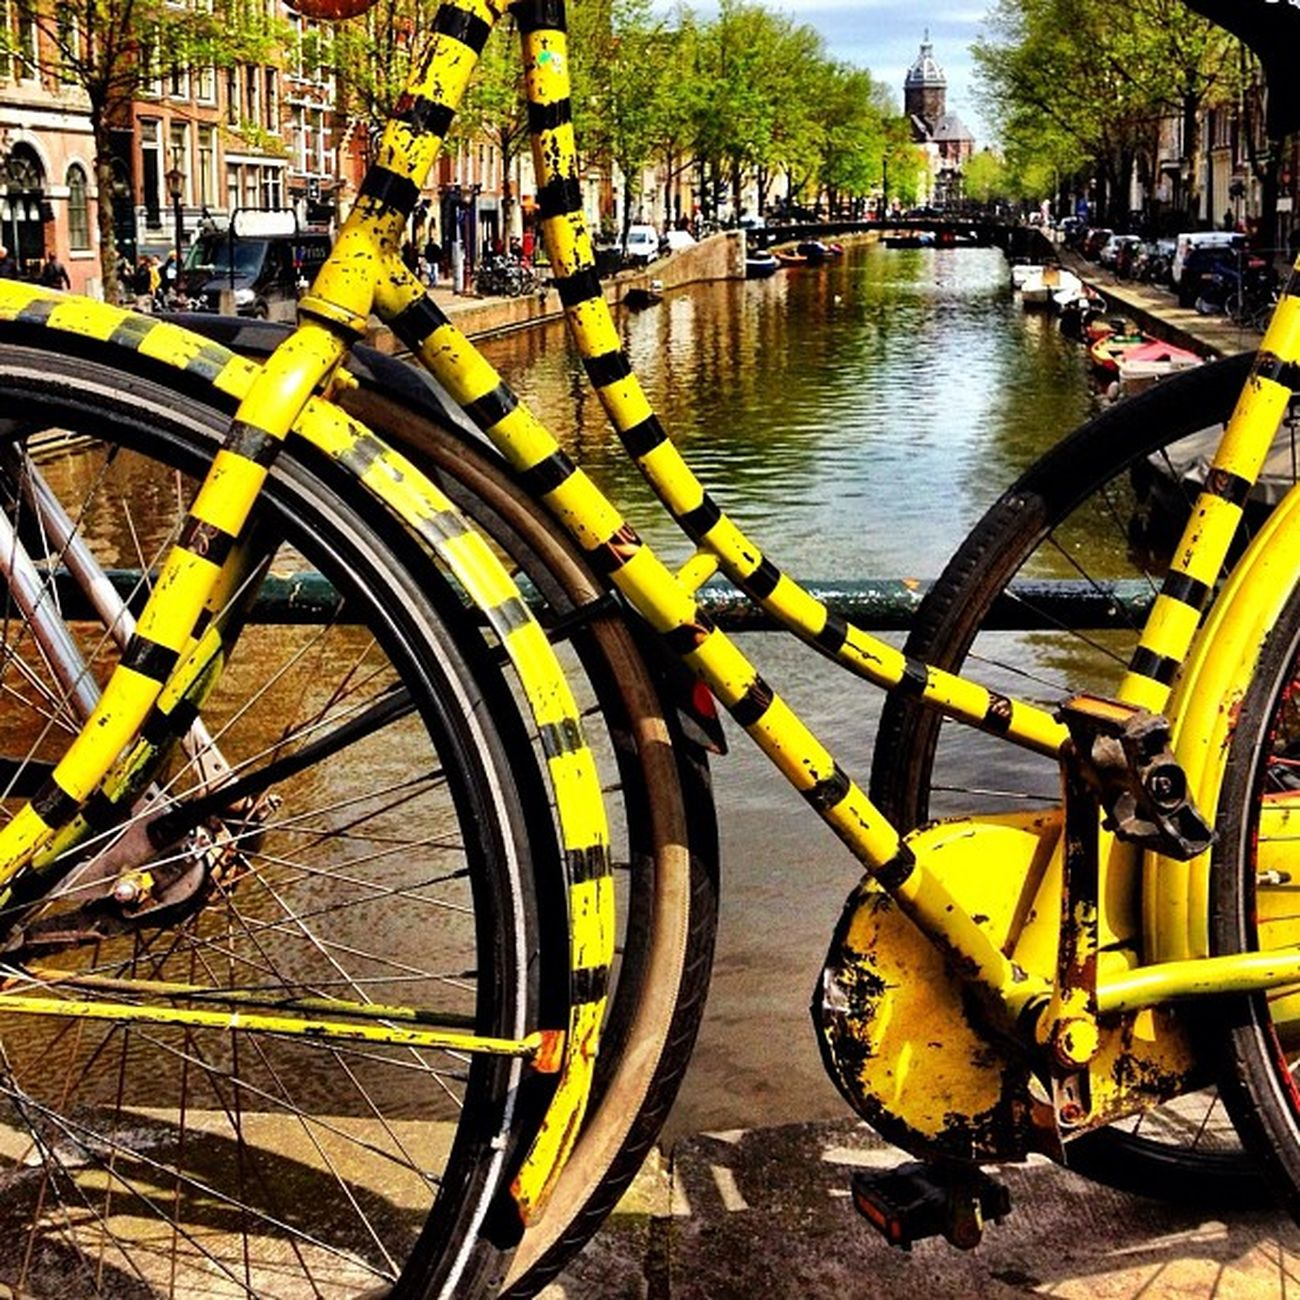 A Bee bike ? #jj_forum #amsterdam #igersholland #ubiquography #holland #dutch Amsterdam Holland Dutch Jj_forum Ubiquography Igersholland